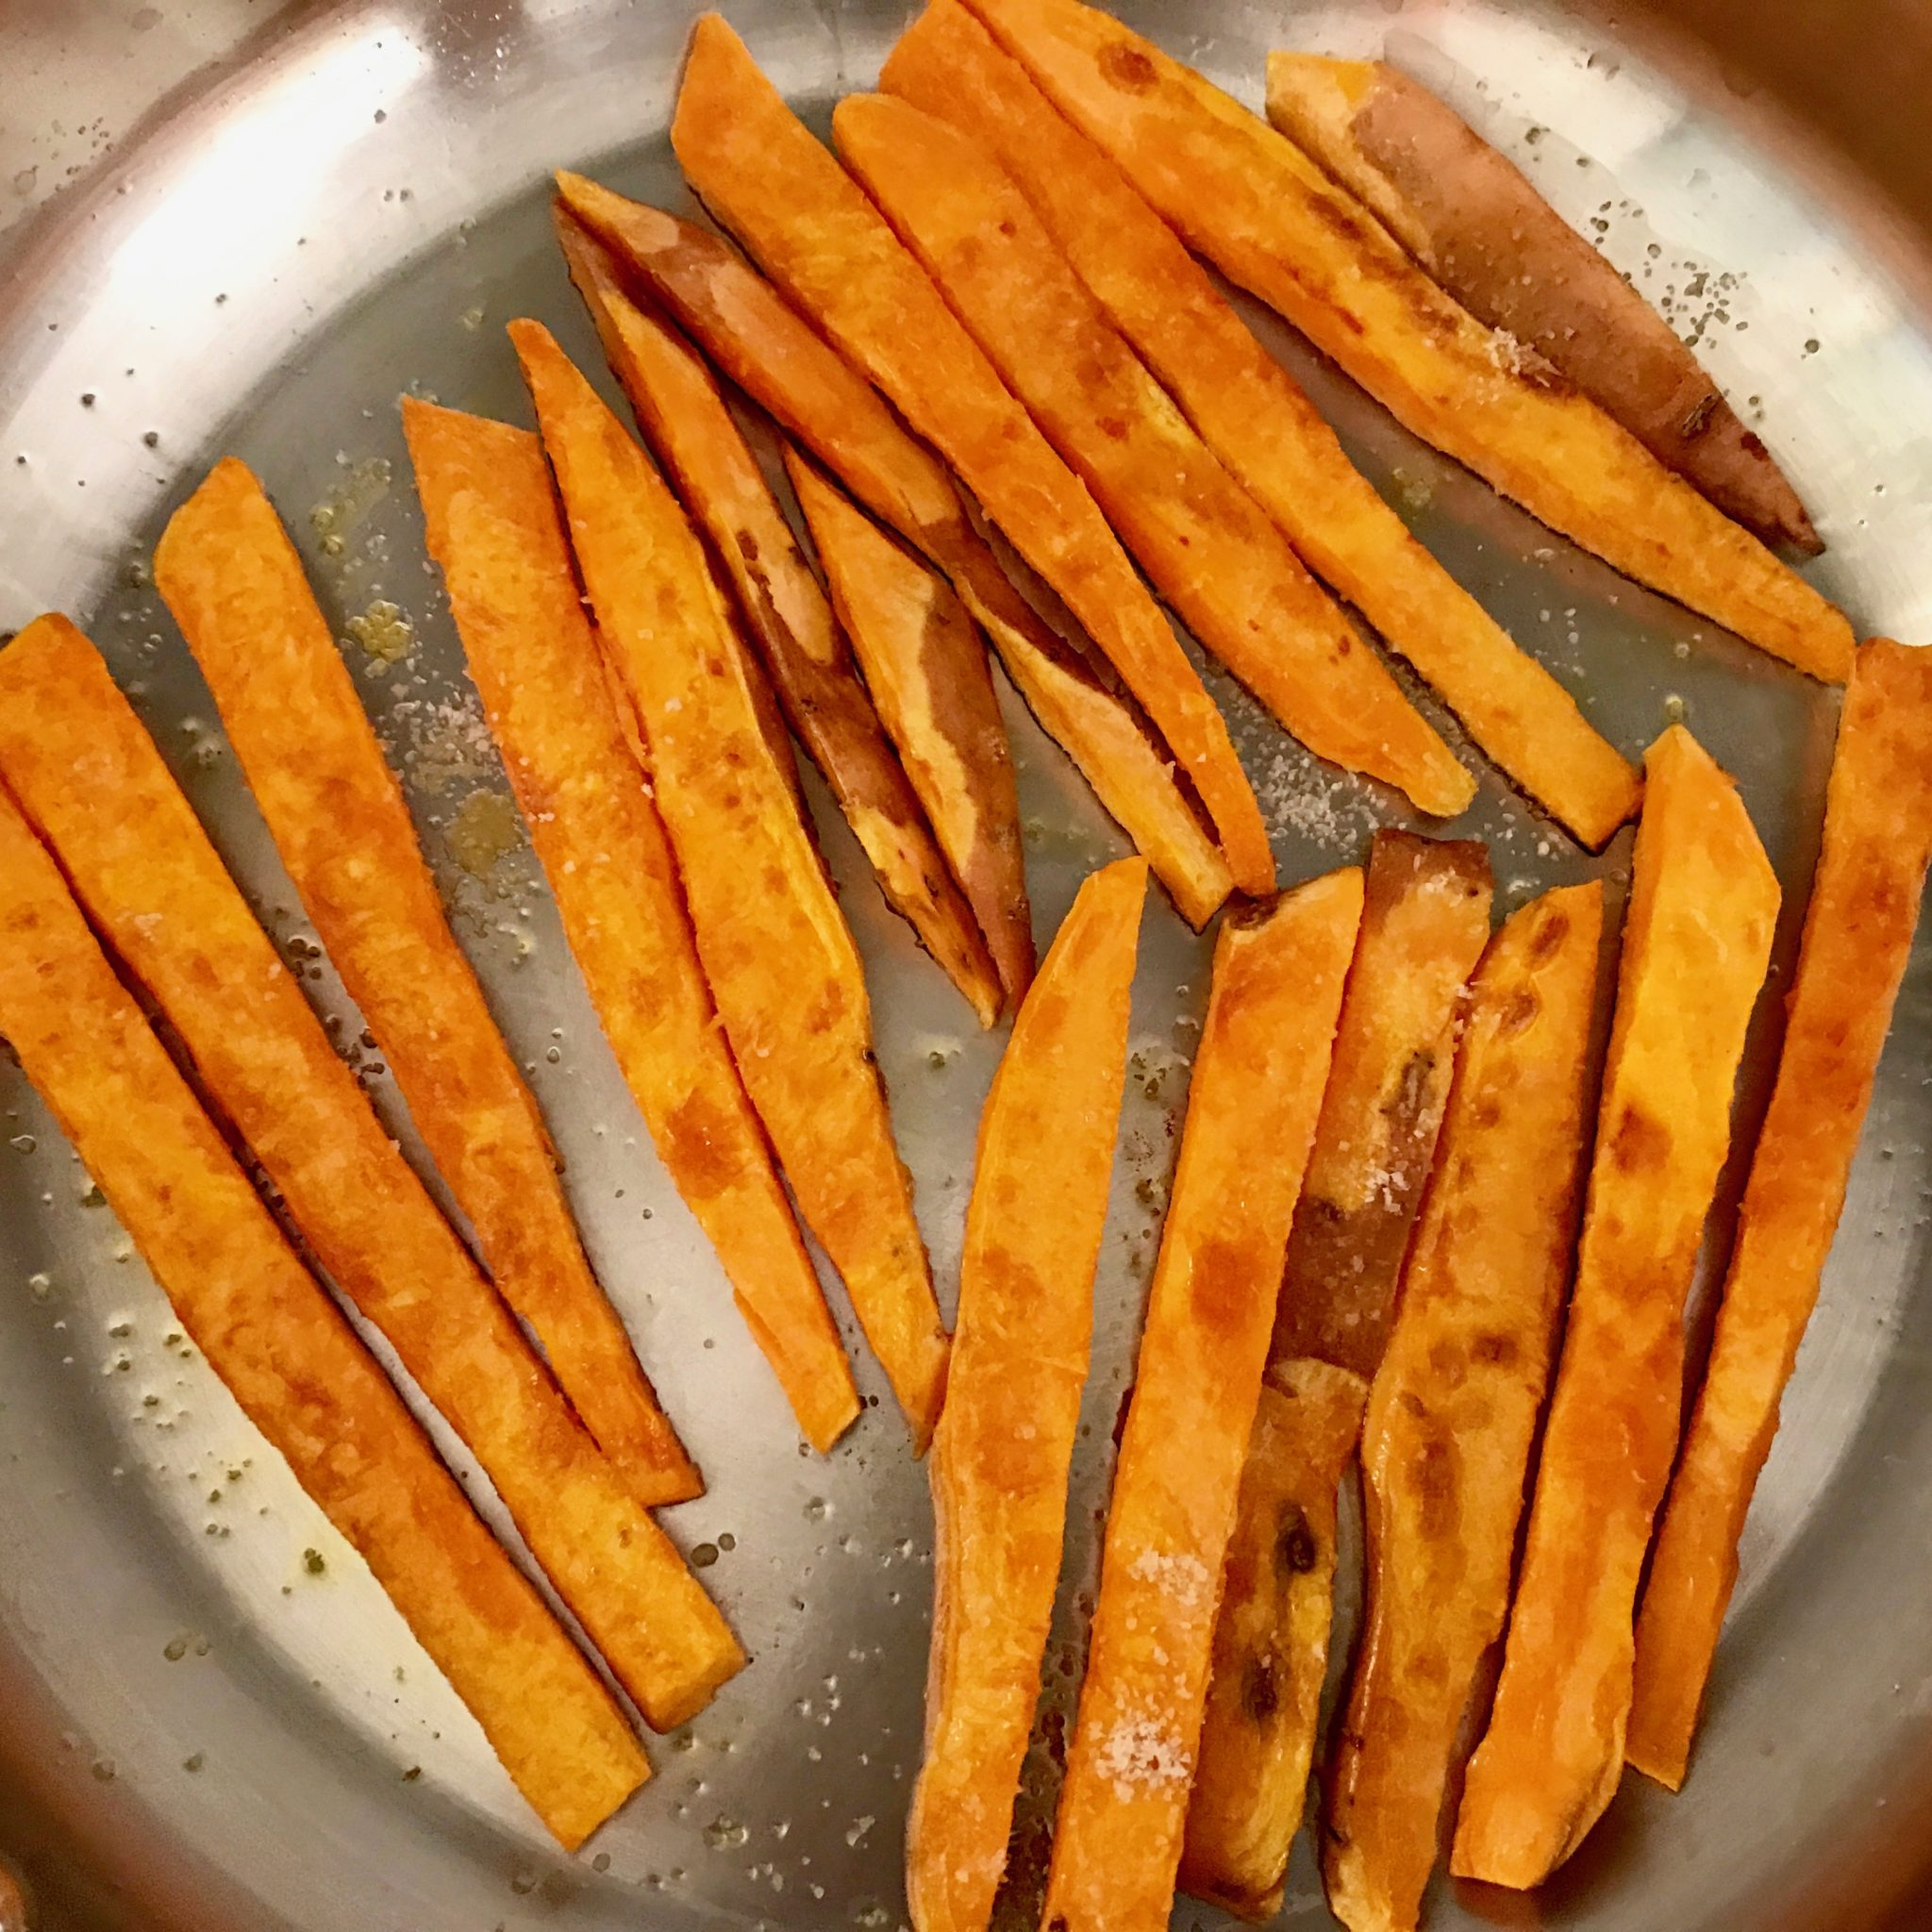 fry them in a pan with a little bit of good oil